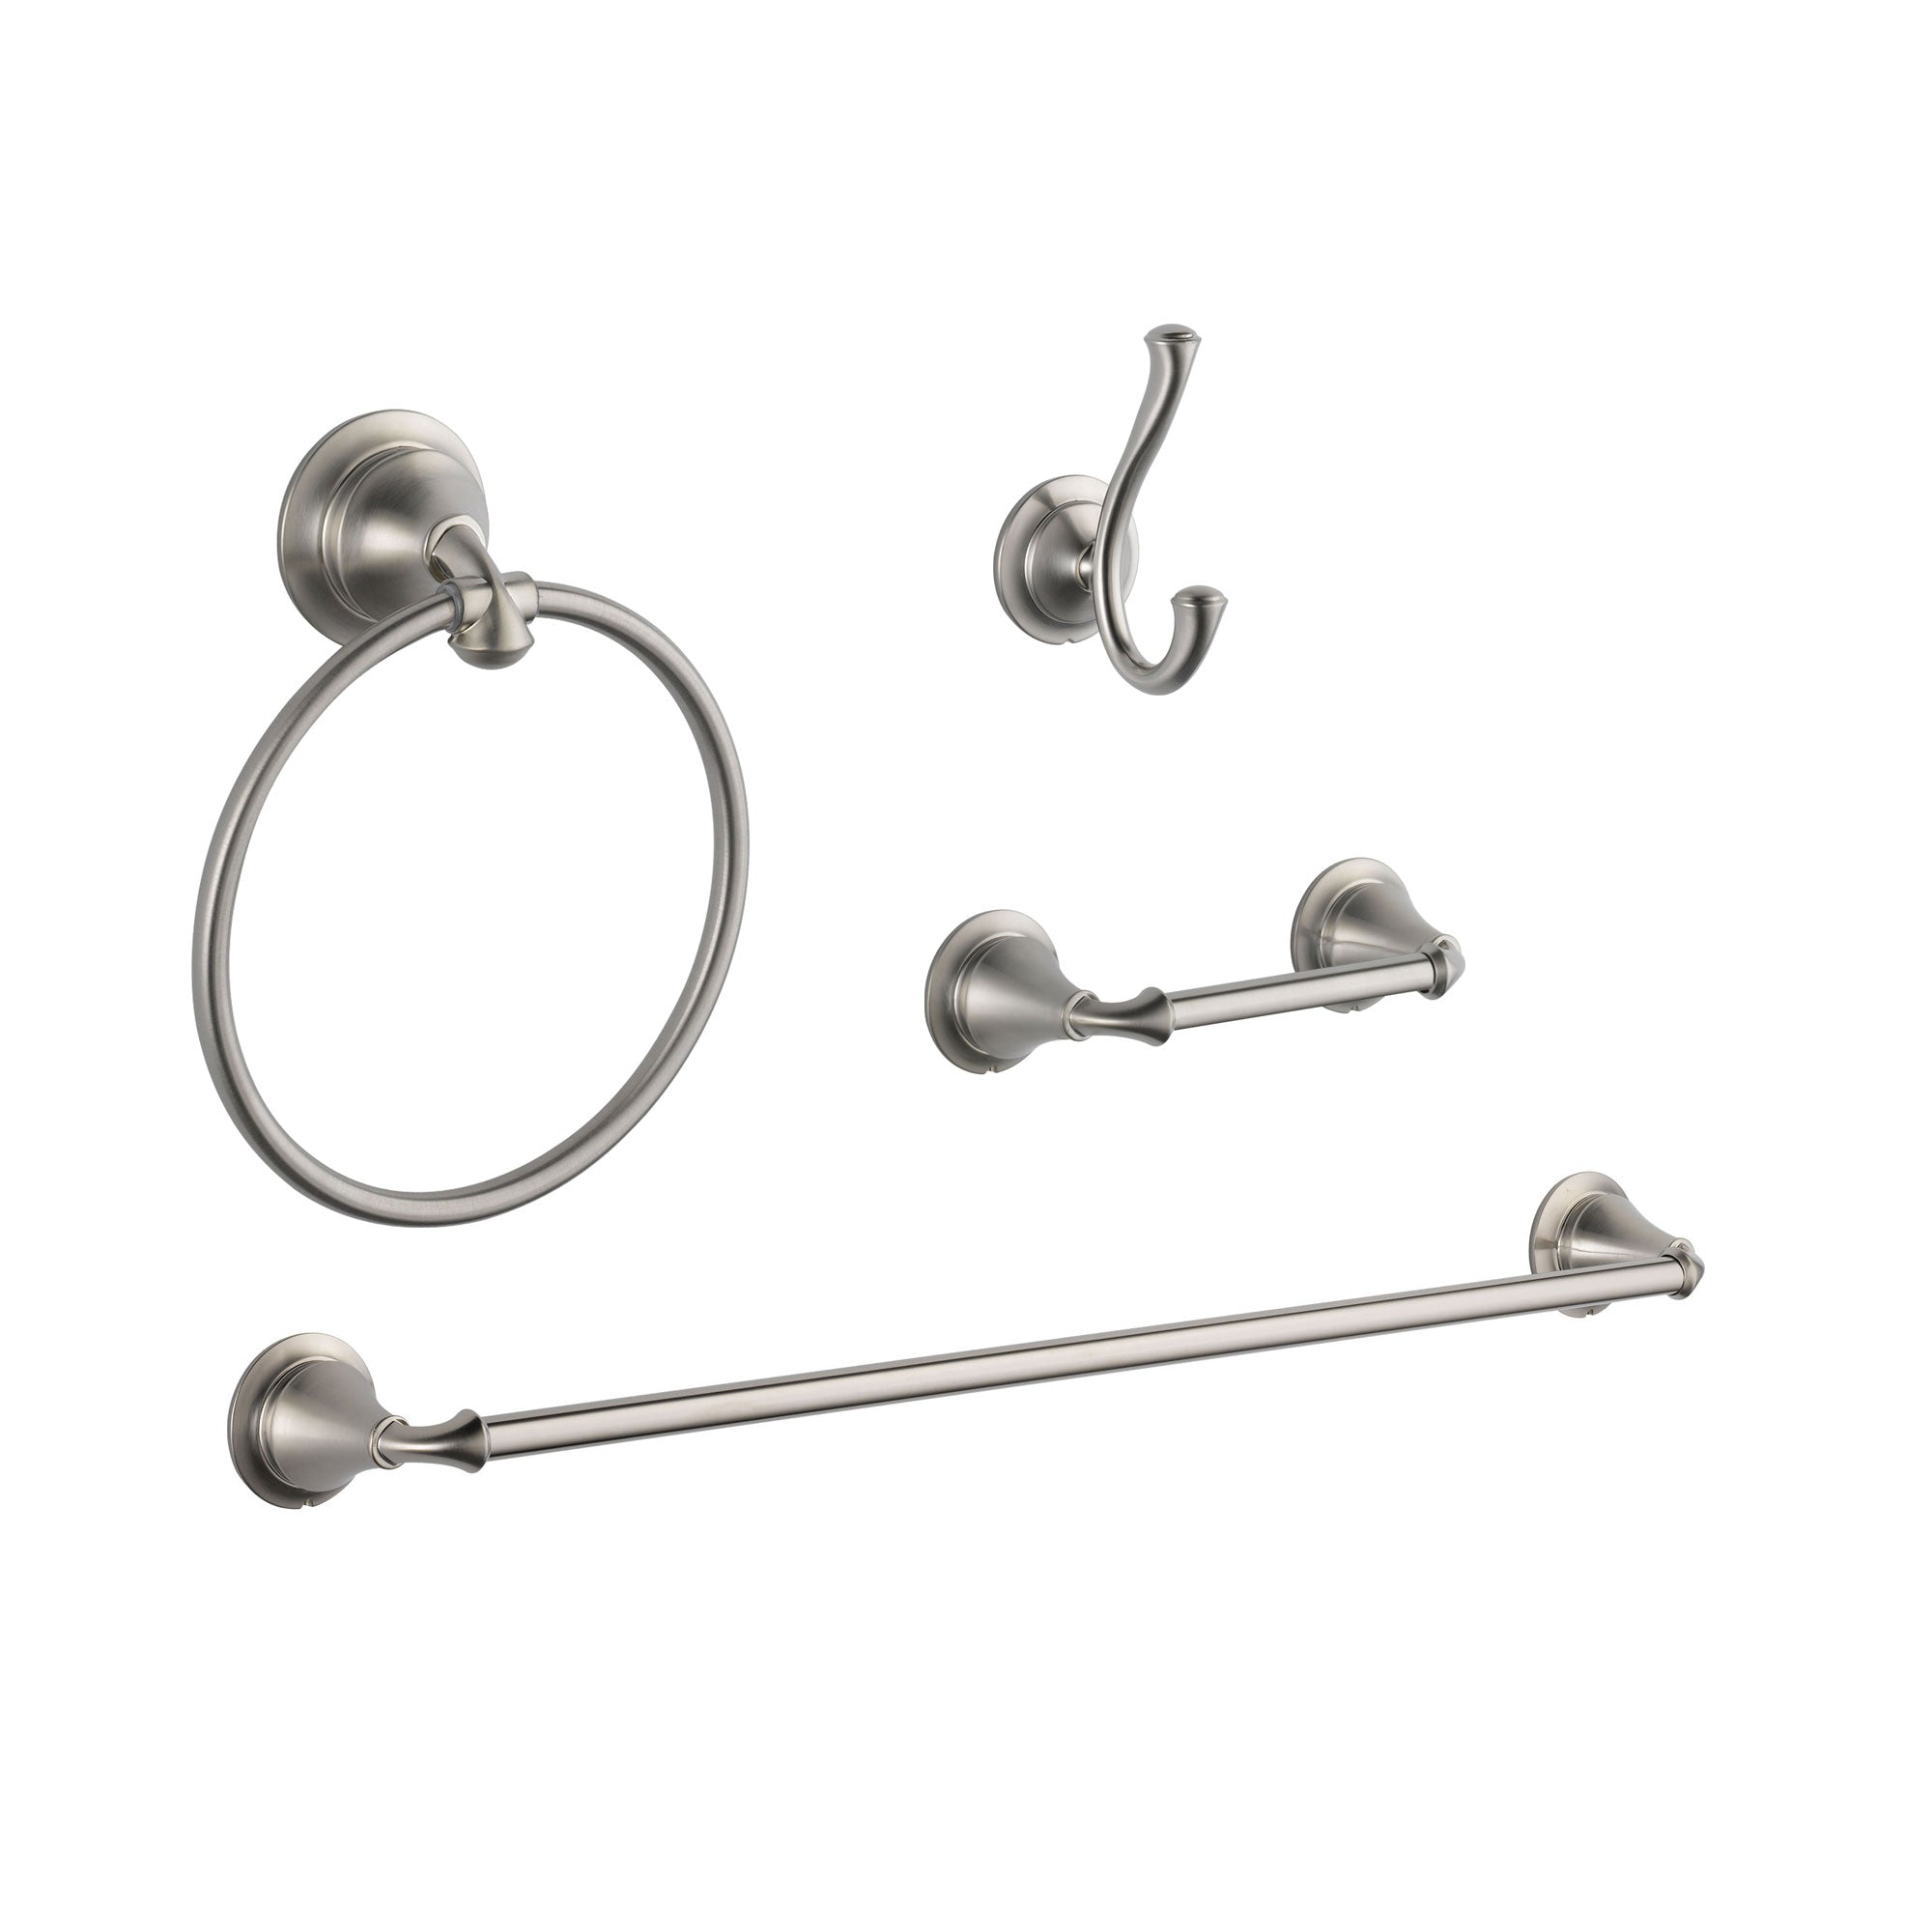 "Delta Linden Stainless Steel Finish STANDARD Bathroom Accessory Set Includes: 24"" Towel Bar, Toilet Paper Holder, Robe Hook, and Towel Ring D10105AP"